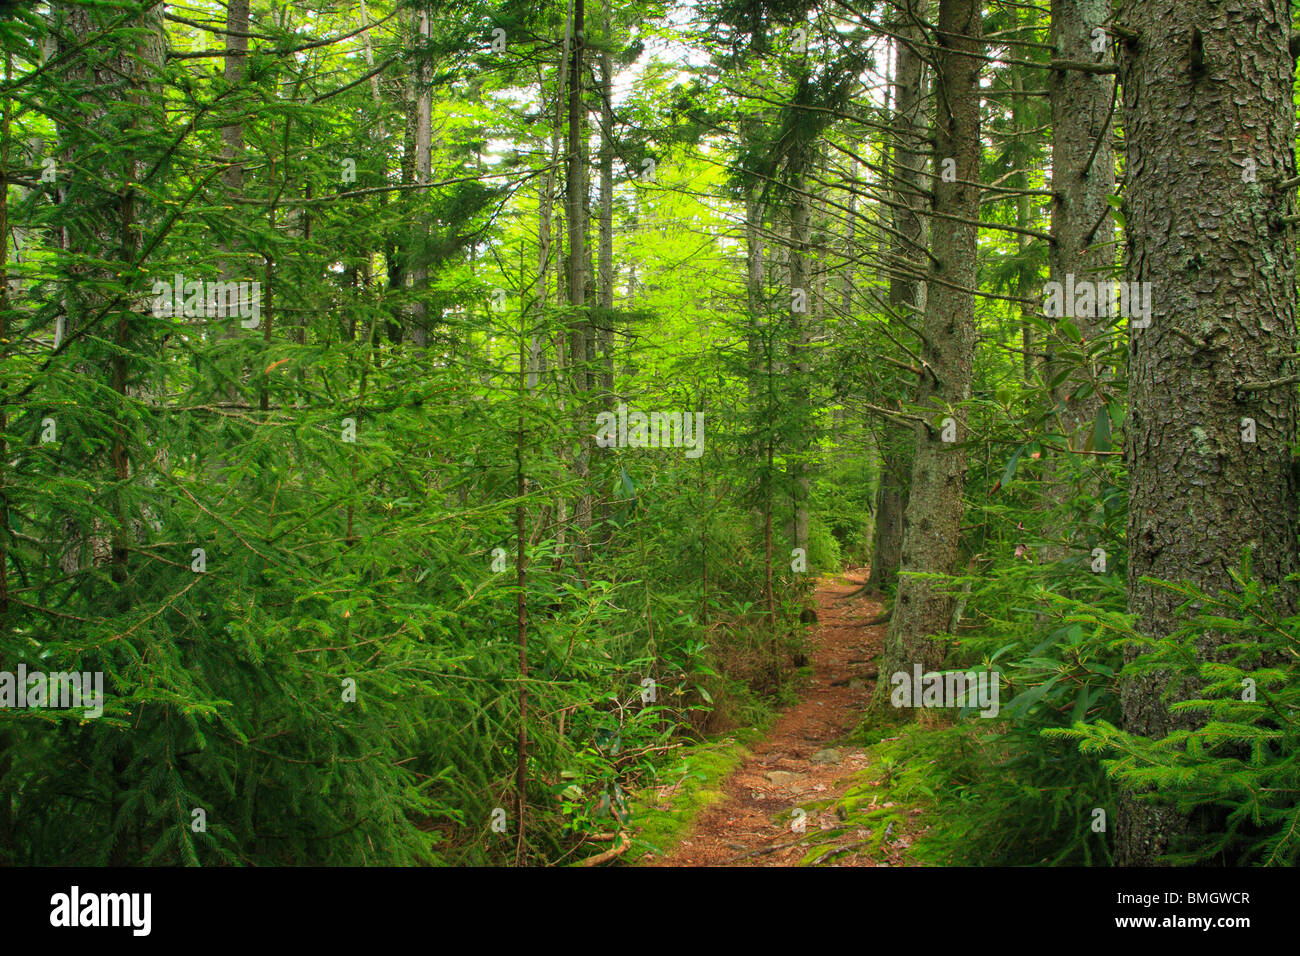 Rohrbaugh Trail, Dolly Sods Wilderness Area, Hopeville, West Virginia - Stock Image